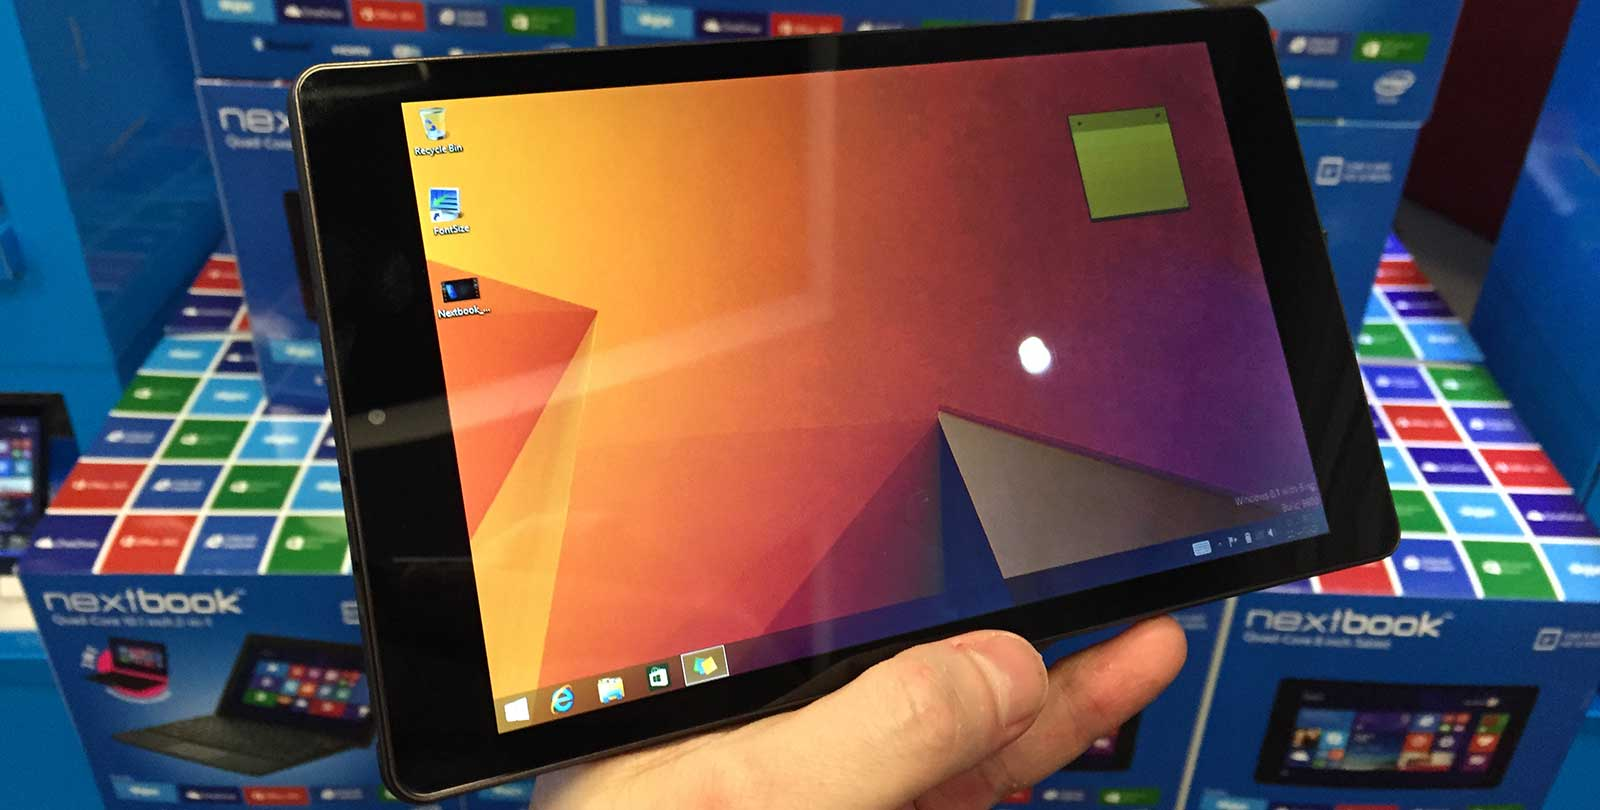 Vamers - FYI - The Windows Nextbook Offers a lot of Bang for Your Buck - 8-inch Nextbook with Windows 8.1